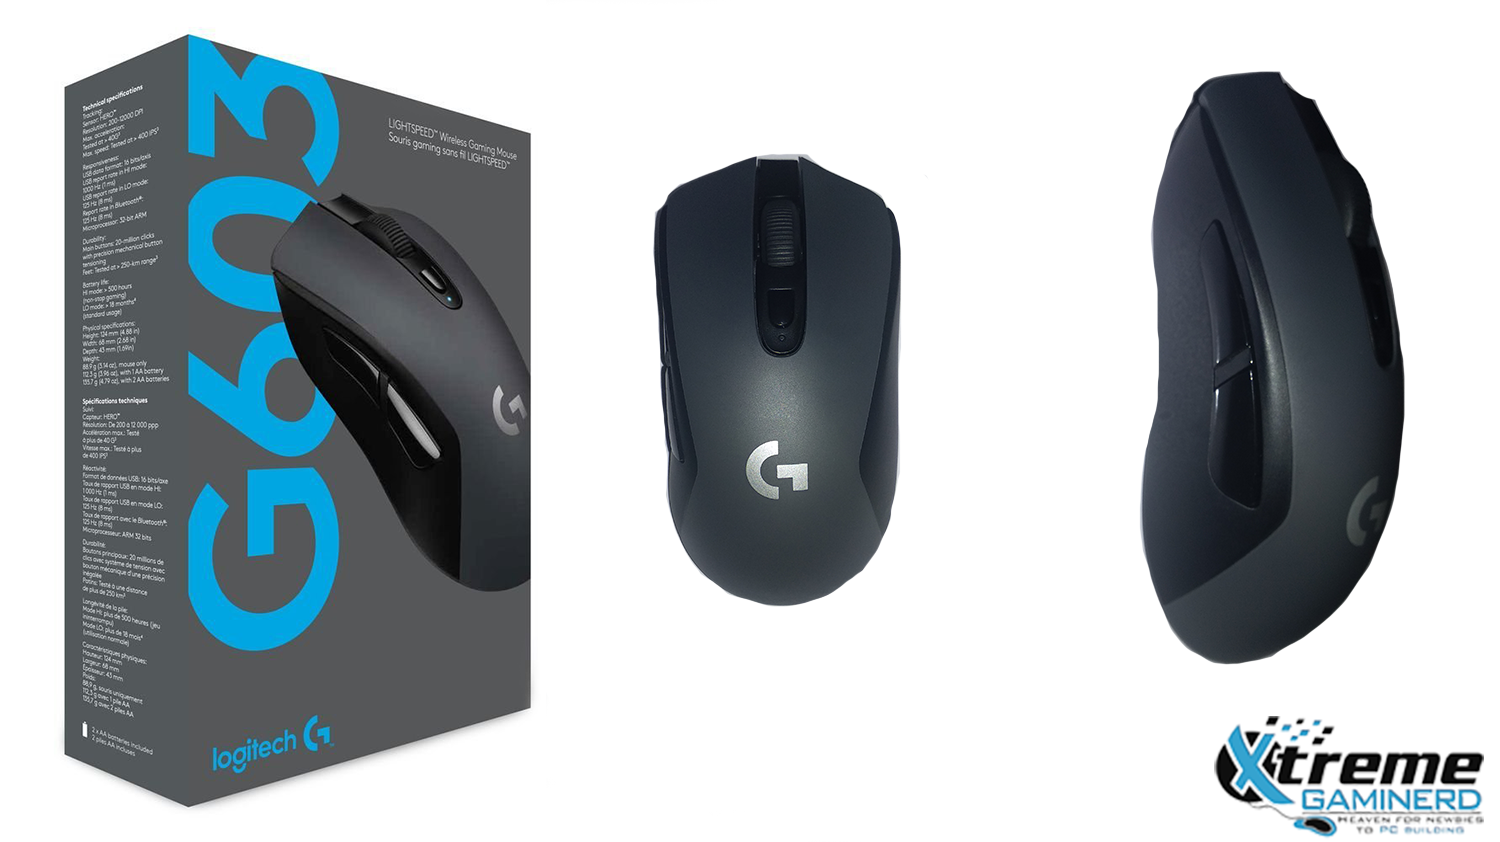 Logitech G613 Keyboard & G603 Mouse review: The perfect